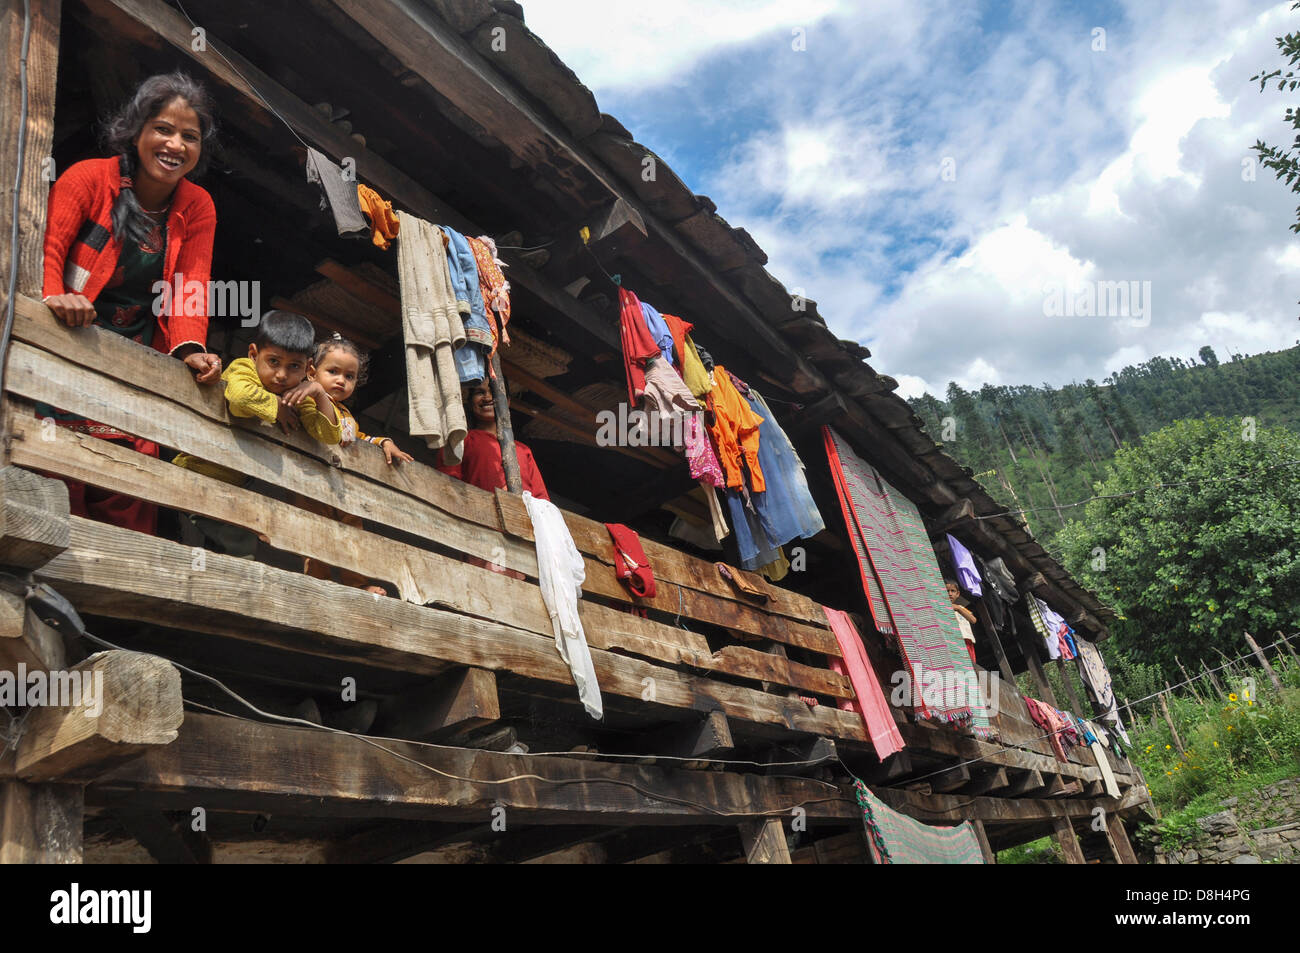 India, Himachal Pradesh, Tosh Valley - Stock Image